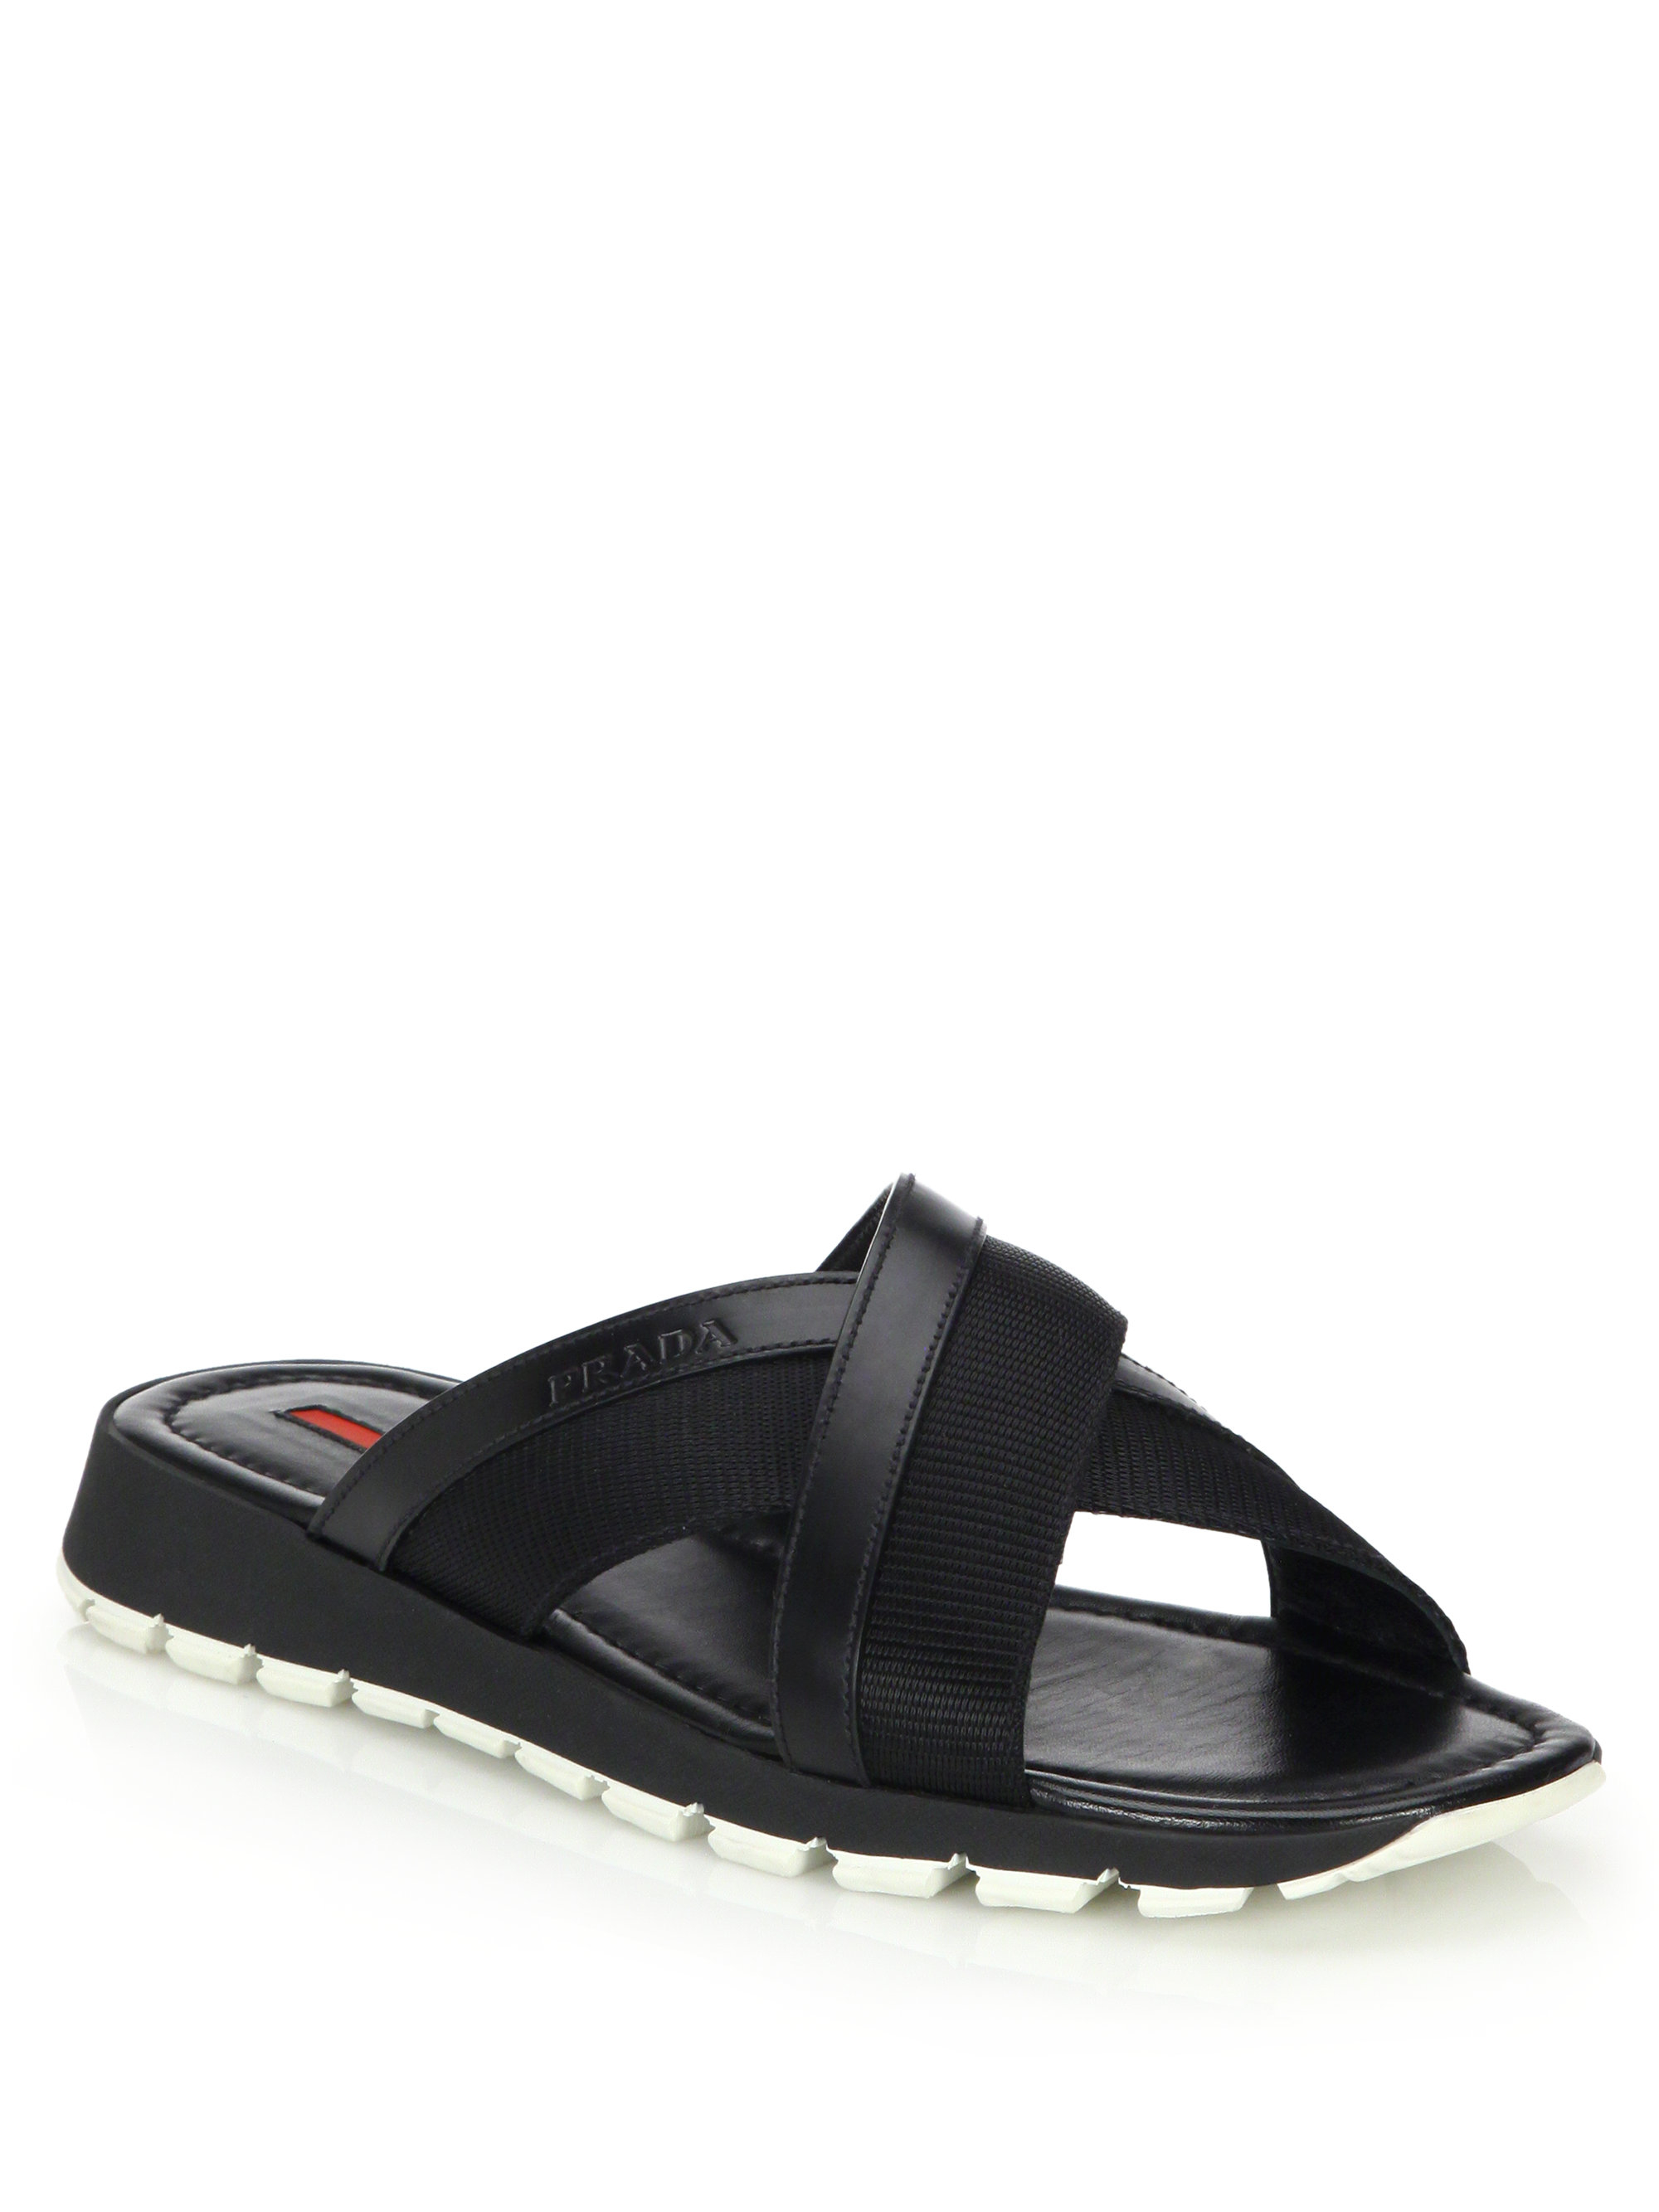 crossover sandals - Black Prada E99DP